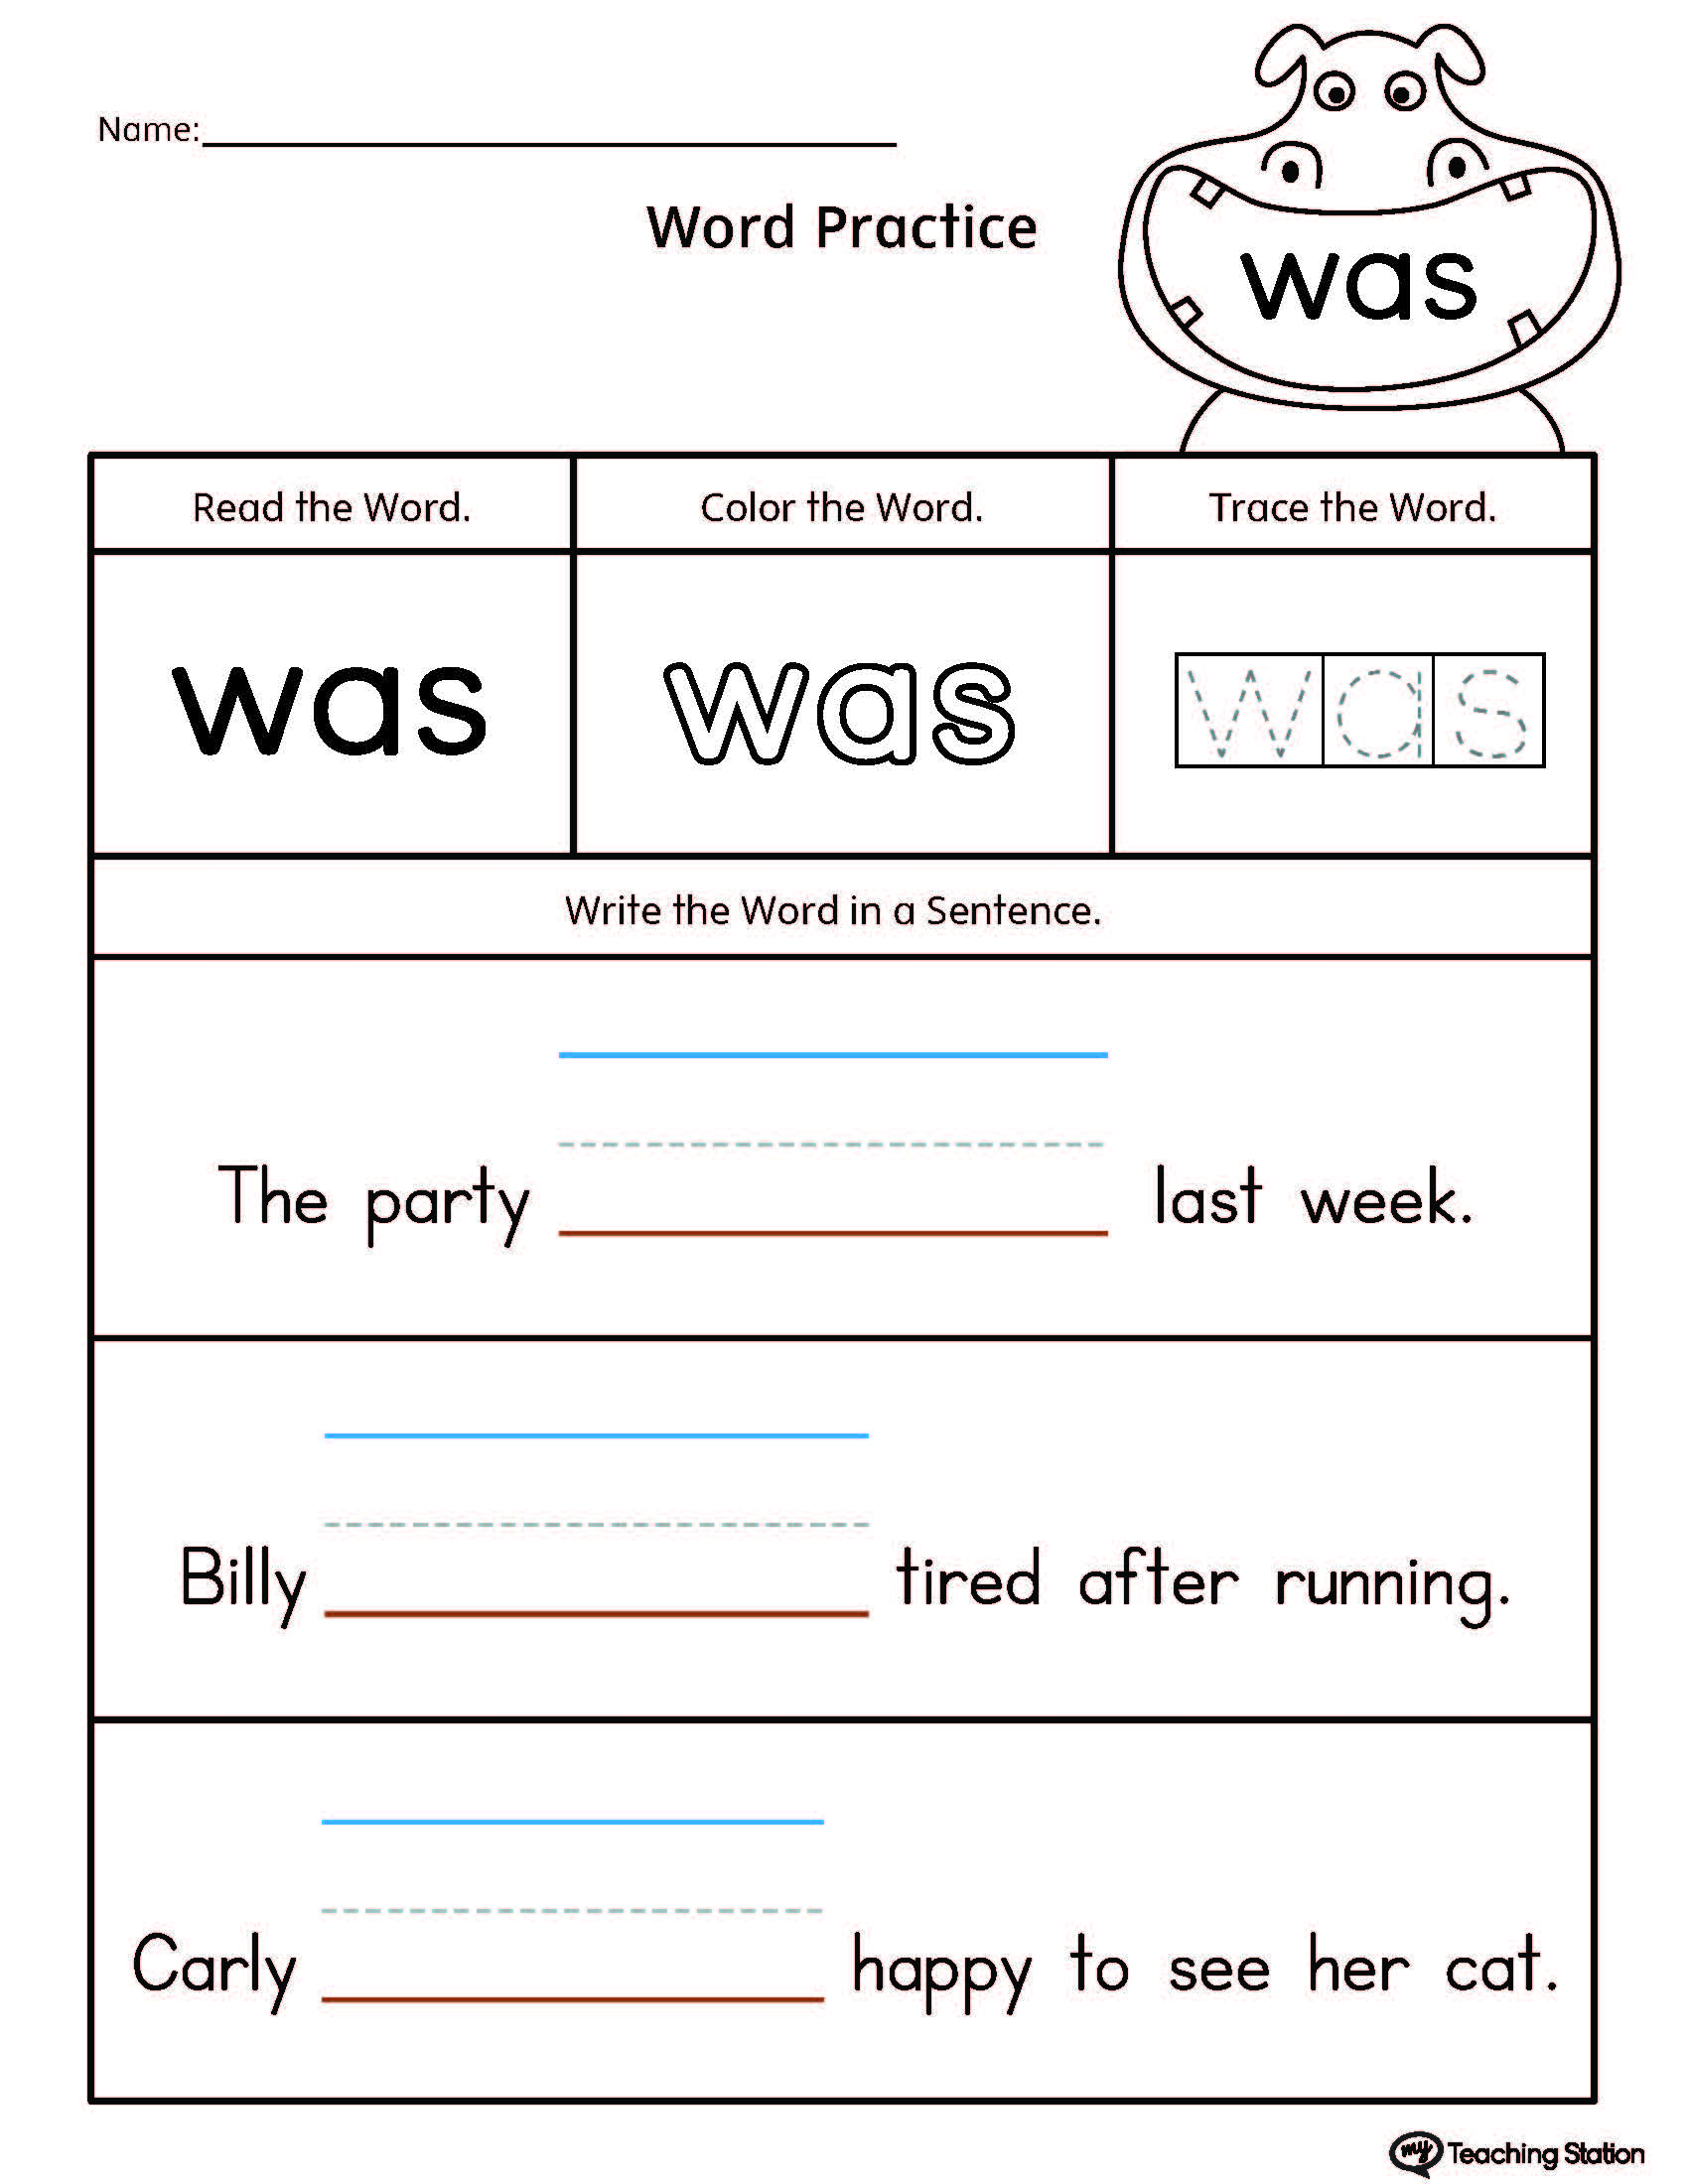 photo regarding Printable Sight Words named Produce Sentences Applying Sight Phrase: WAS